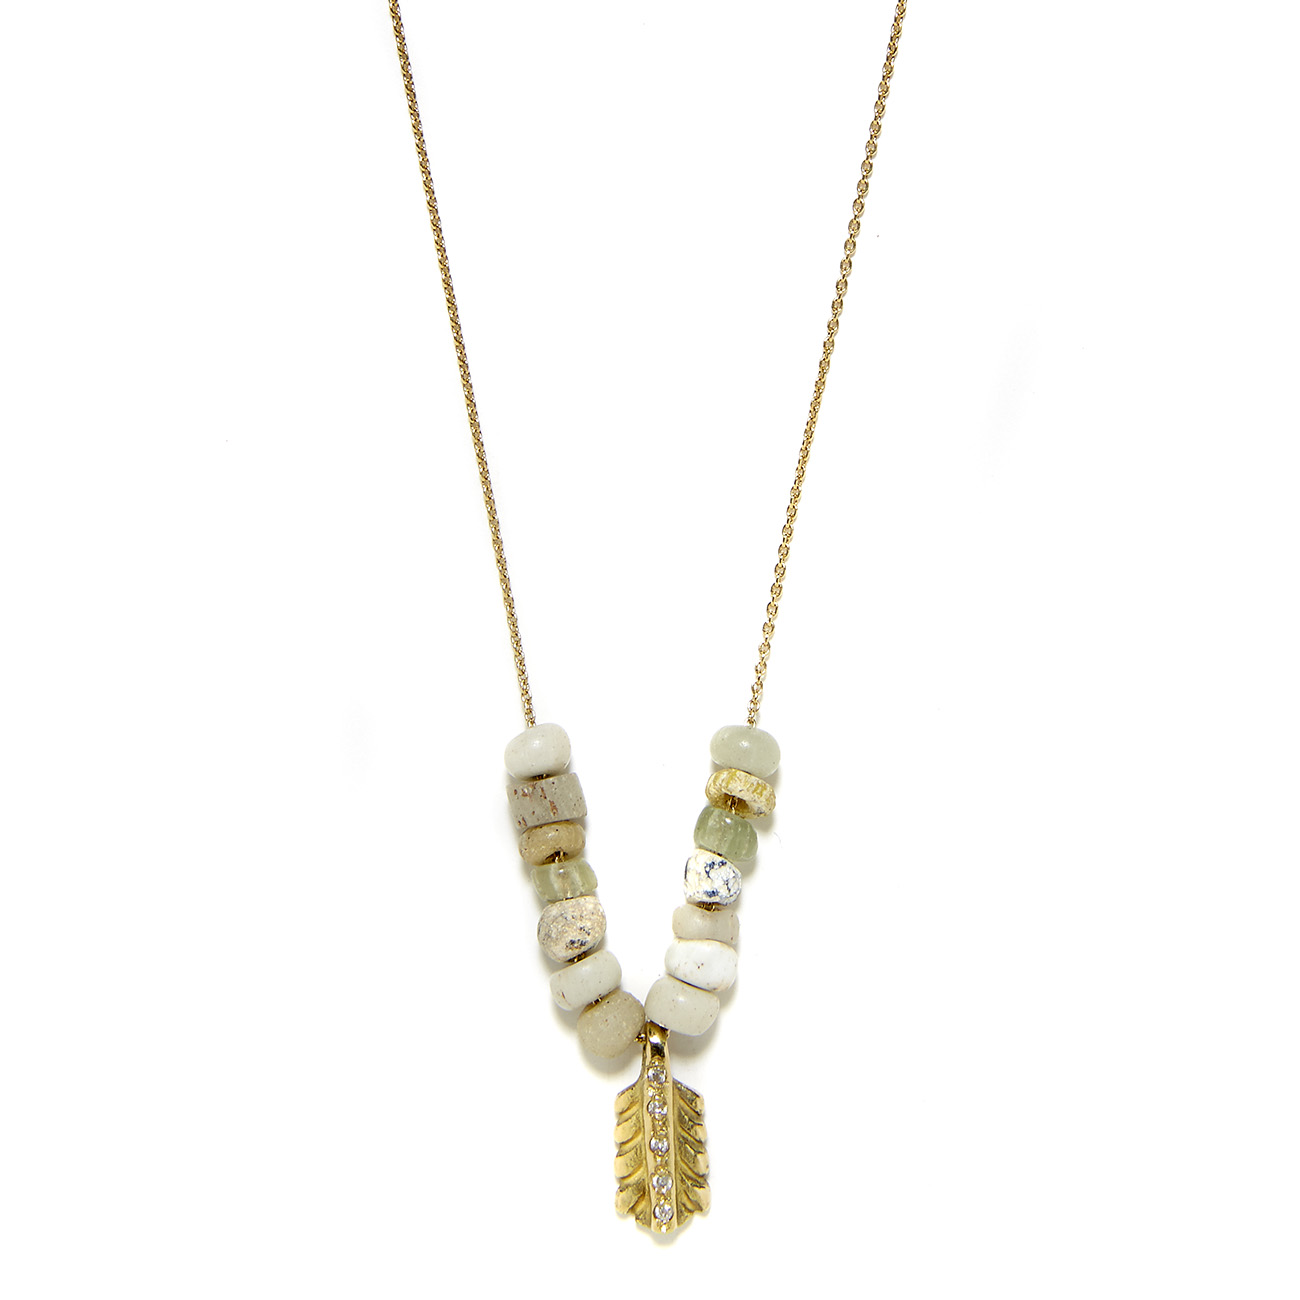 Elisa Solomon - Yellow Gold Diamond Small Feather Necklace With Beads